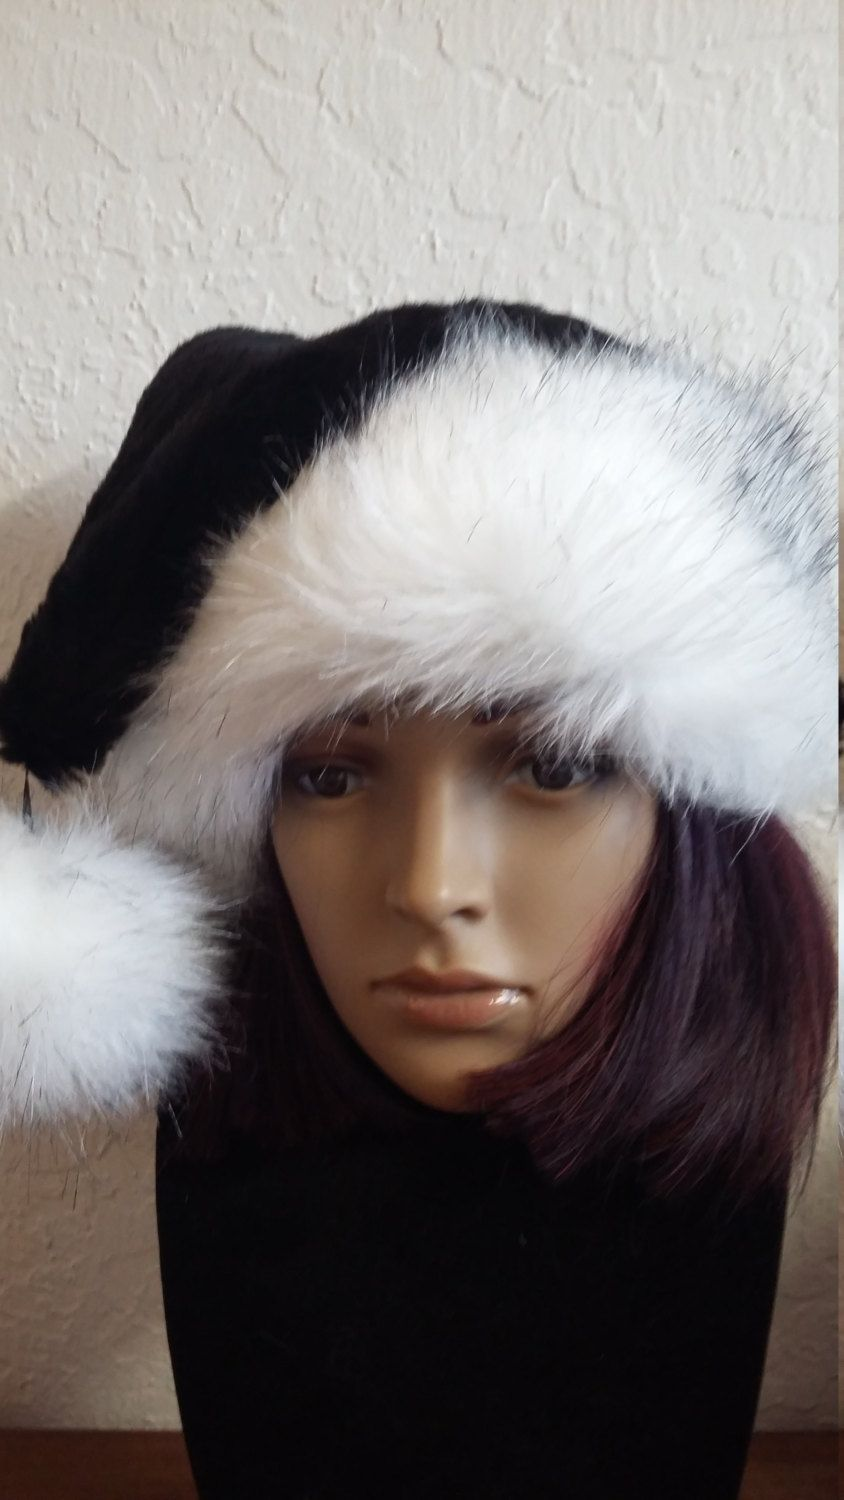 256a977a84857 Limited Edition Black Santa hat with Luxury white trim by OriginalsByEva on  Etsy